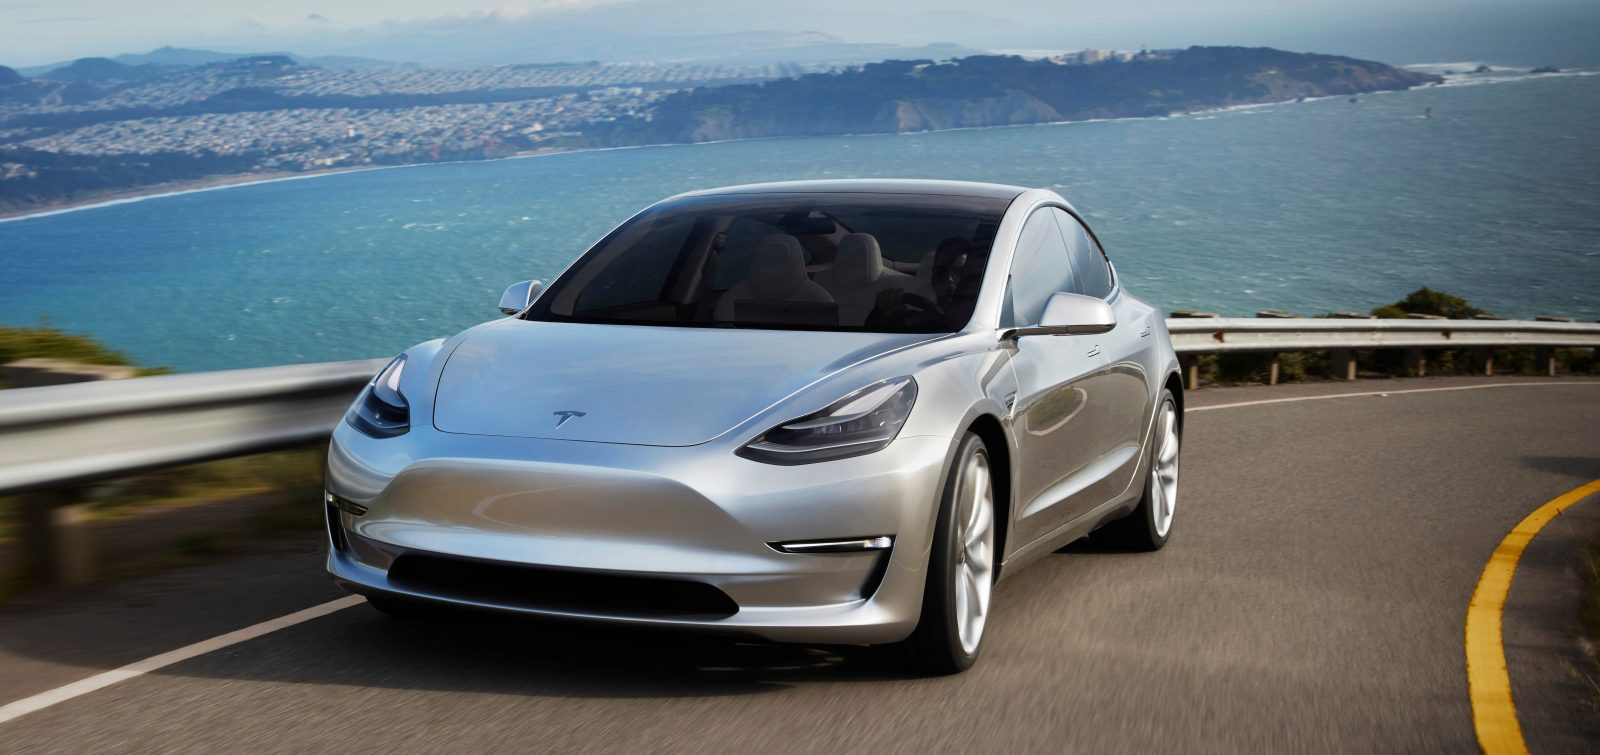 The Tesla Model 3 Is First Vehicle Built On S Third Generation Platform It Aims To Reduce Entry Price For Electric Vehicles While Not Making